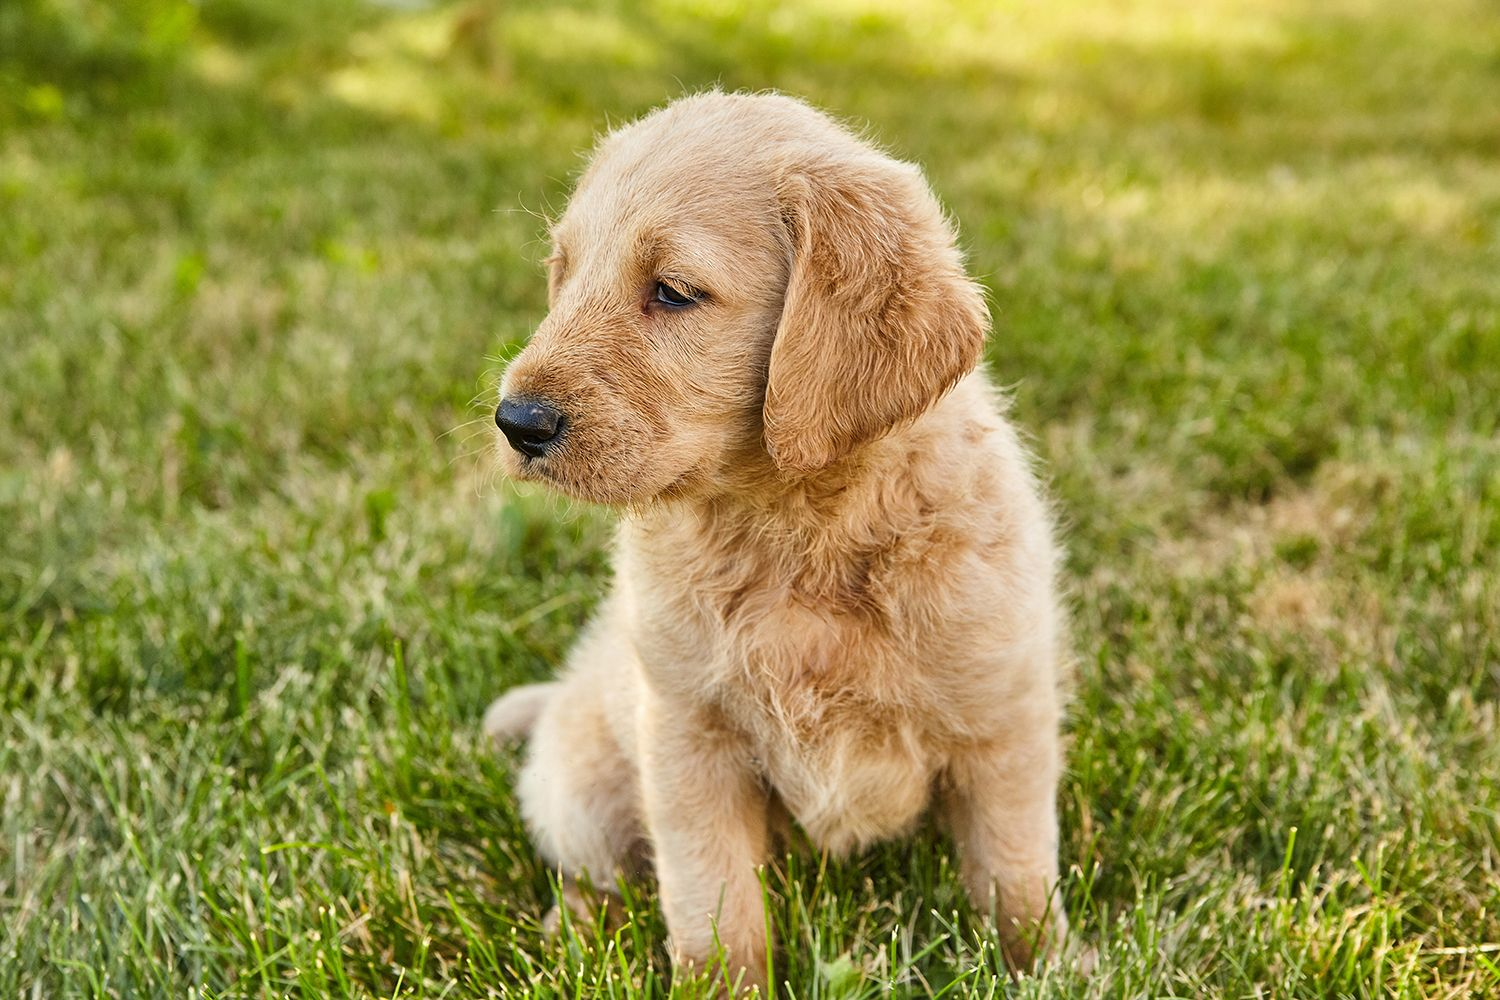 We Have A Few Male Labradoodle Puppies Left Asking 500 For Them